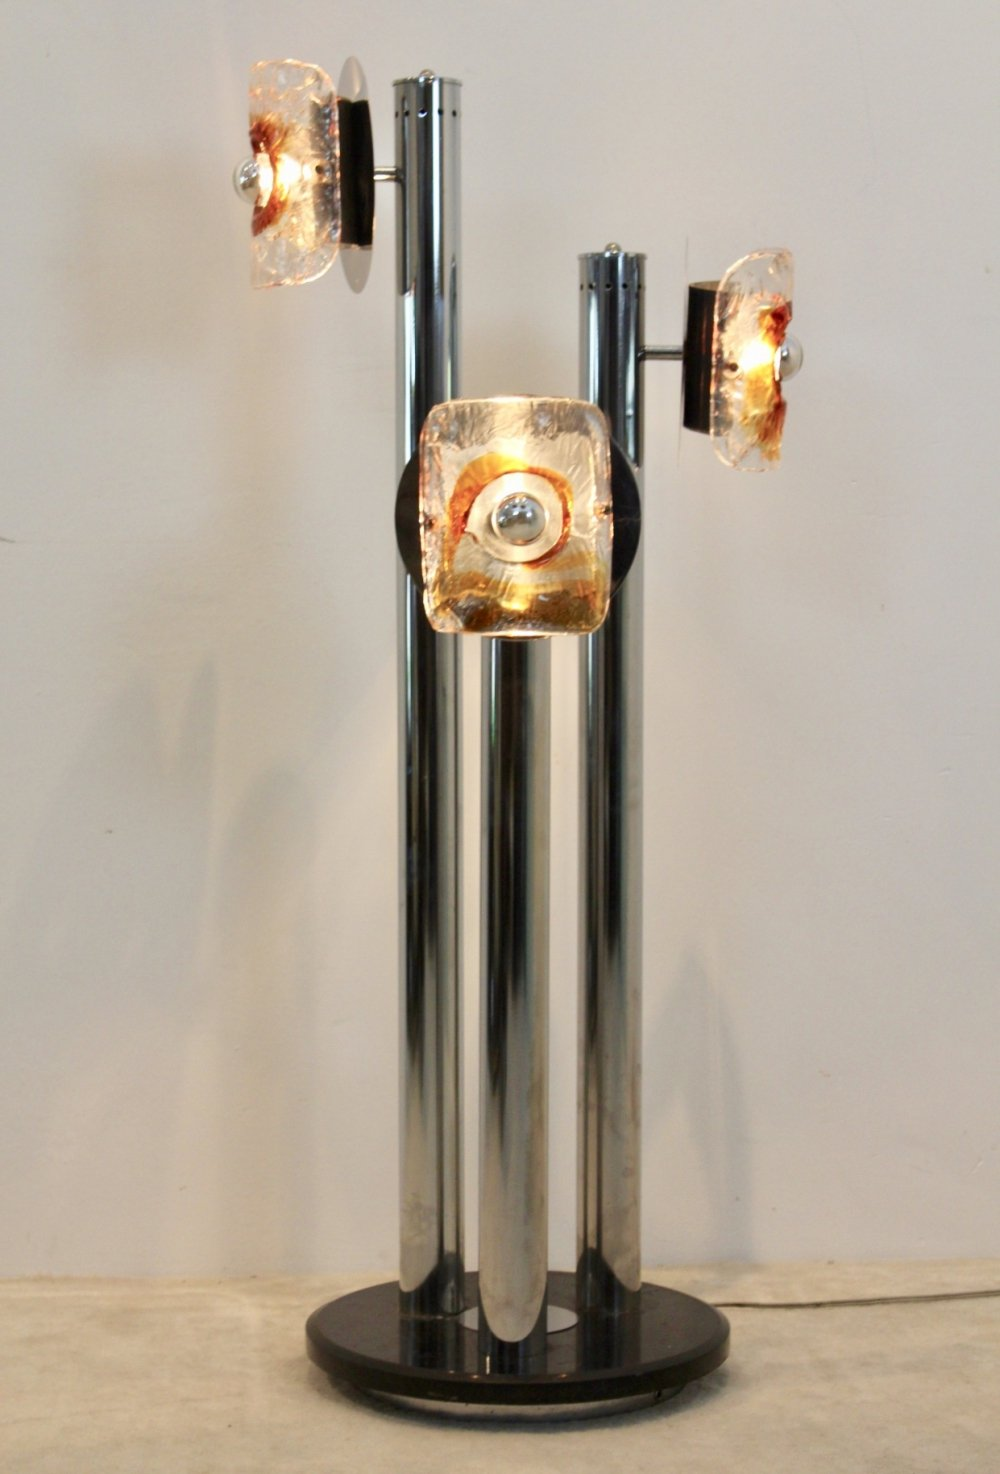 Chrome, Marble & Murano Glass Floor Lamp by Toni Zuccheri for VeArt, Italy